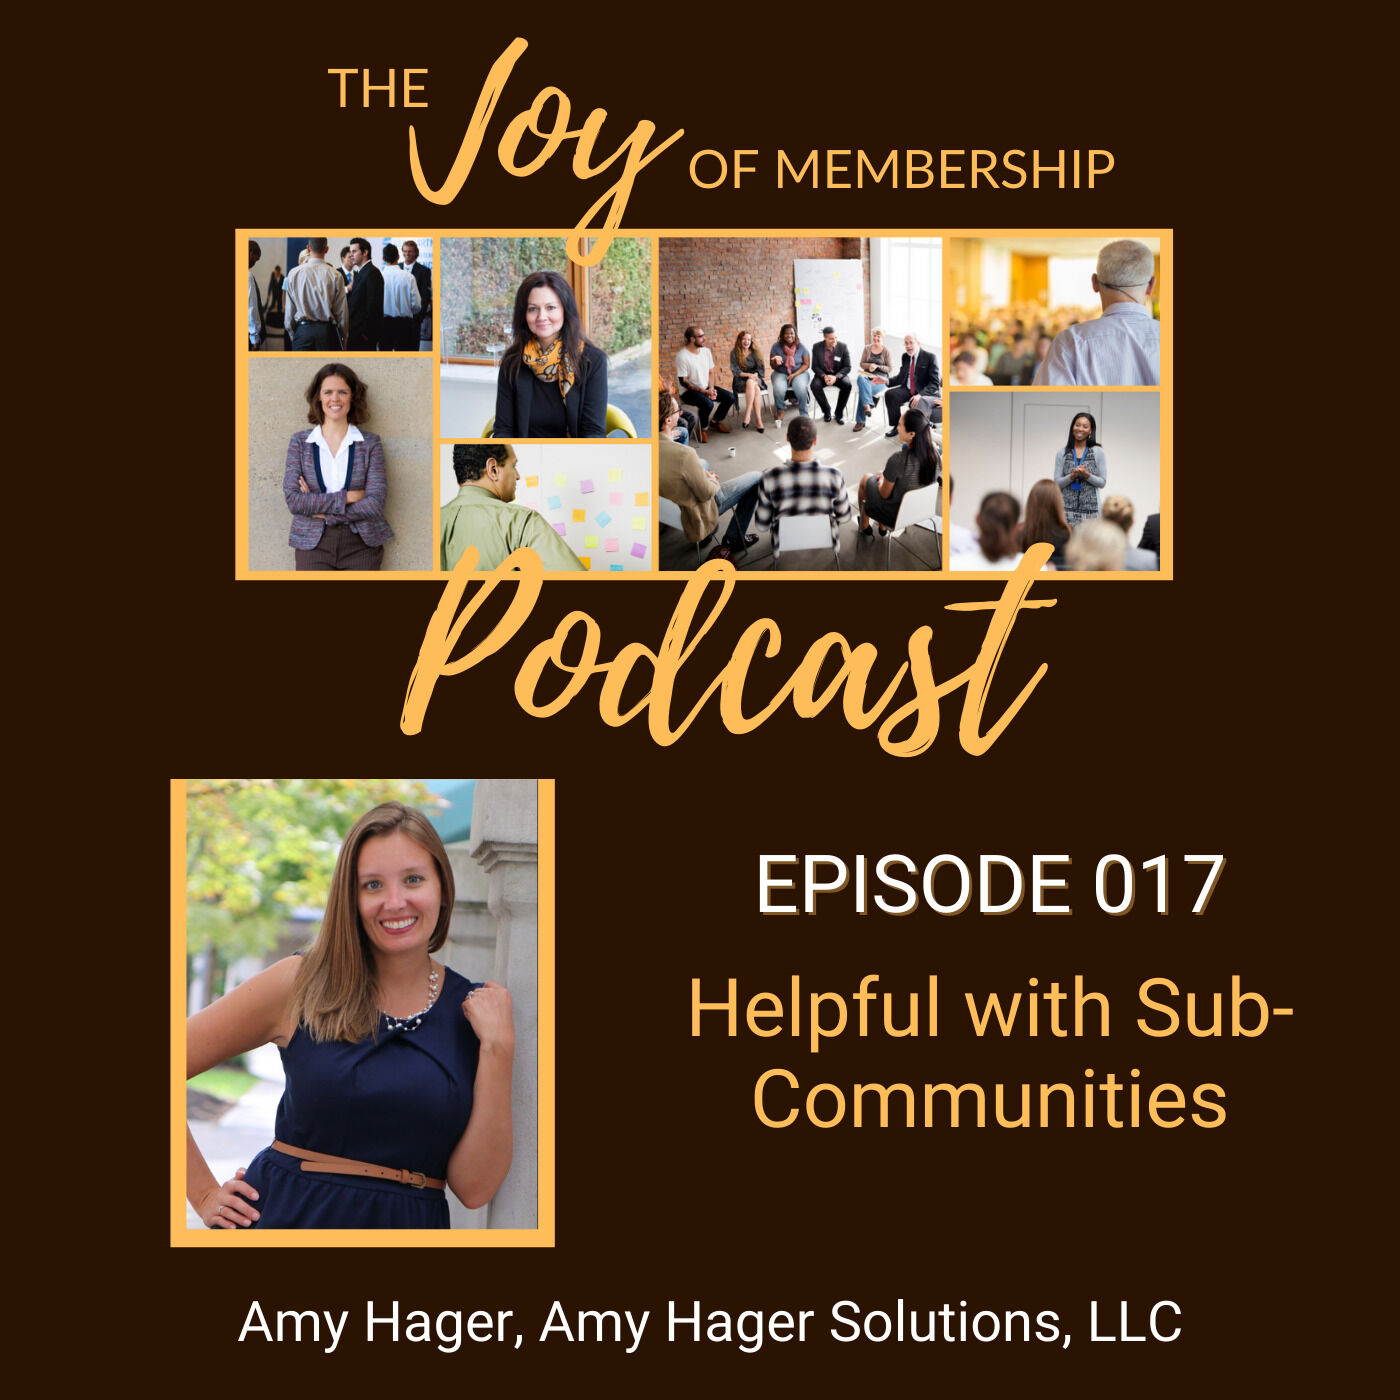 Helpful with Sub-Communities: Amy Hager